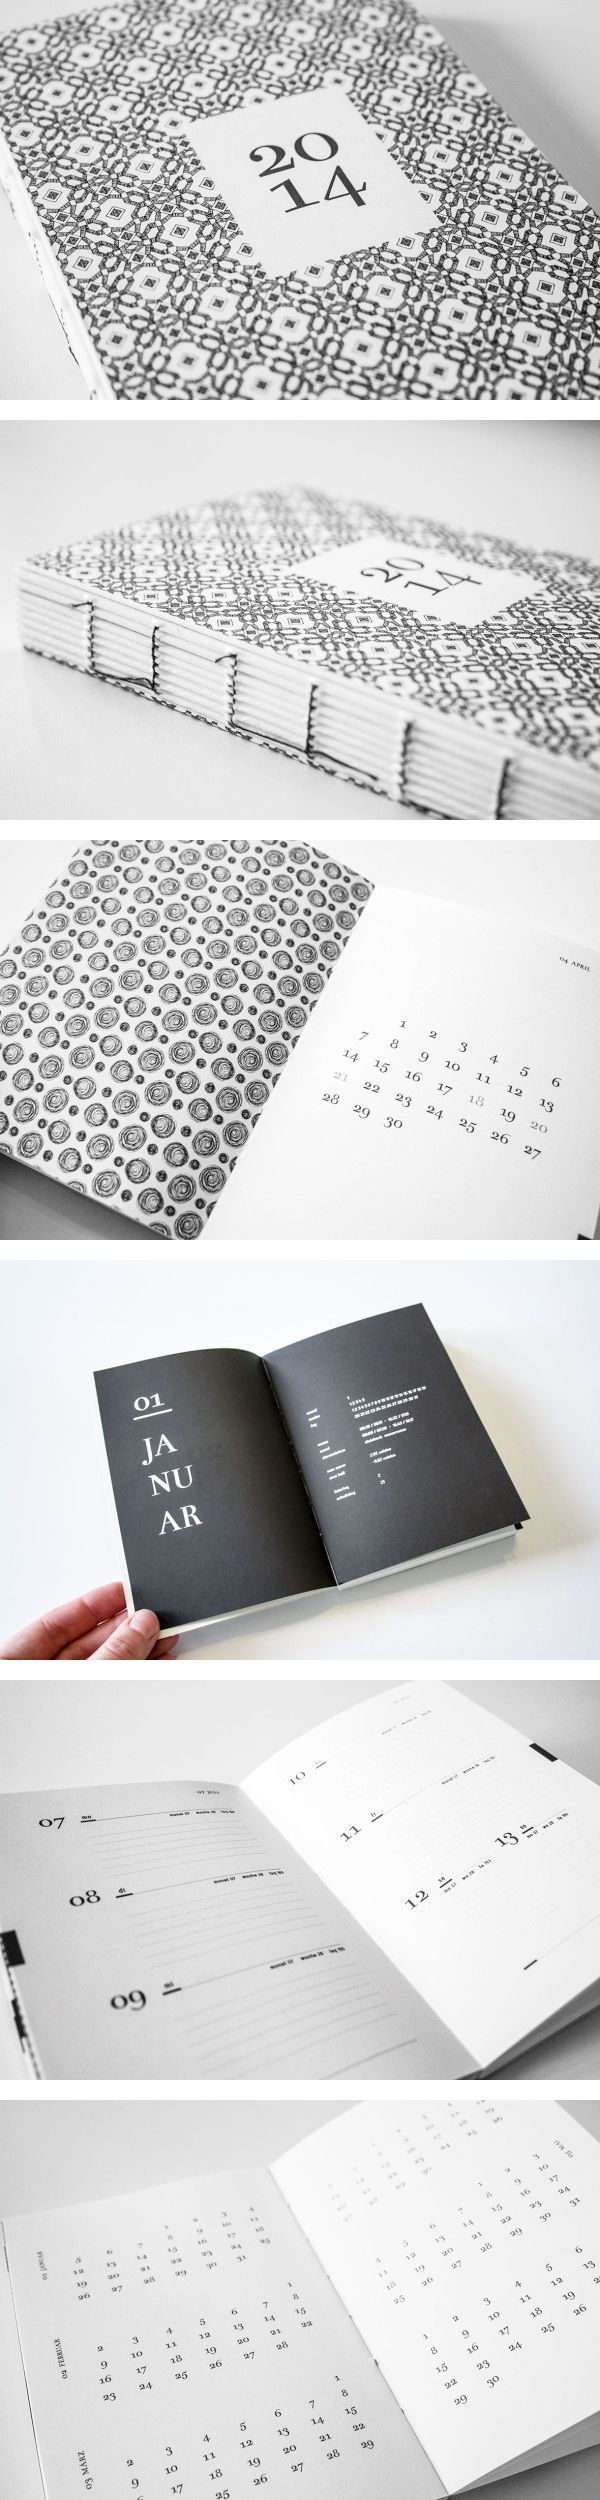 Design Calendar   Annkathrin Dahlhaus Good example of type as graphic. Clear and easy to use structure, but with enough typographic variation to keep layouts different. Minimal color scheme highlights type as graphic elements, creating patterns similar in some ways to the cover.